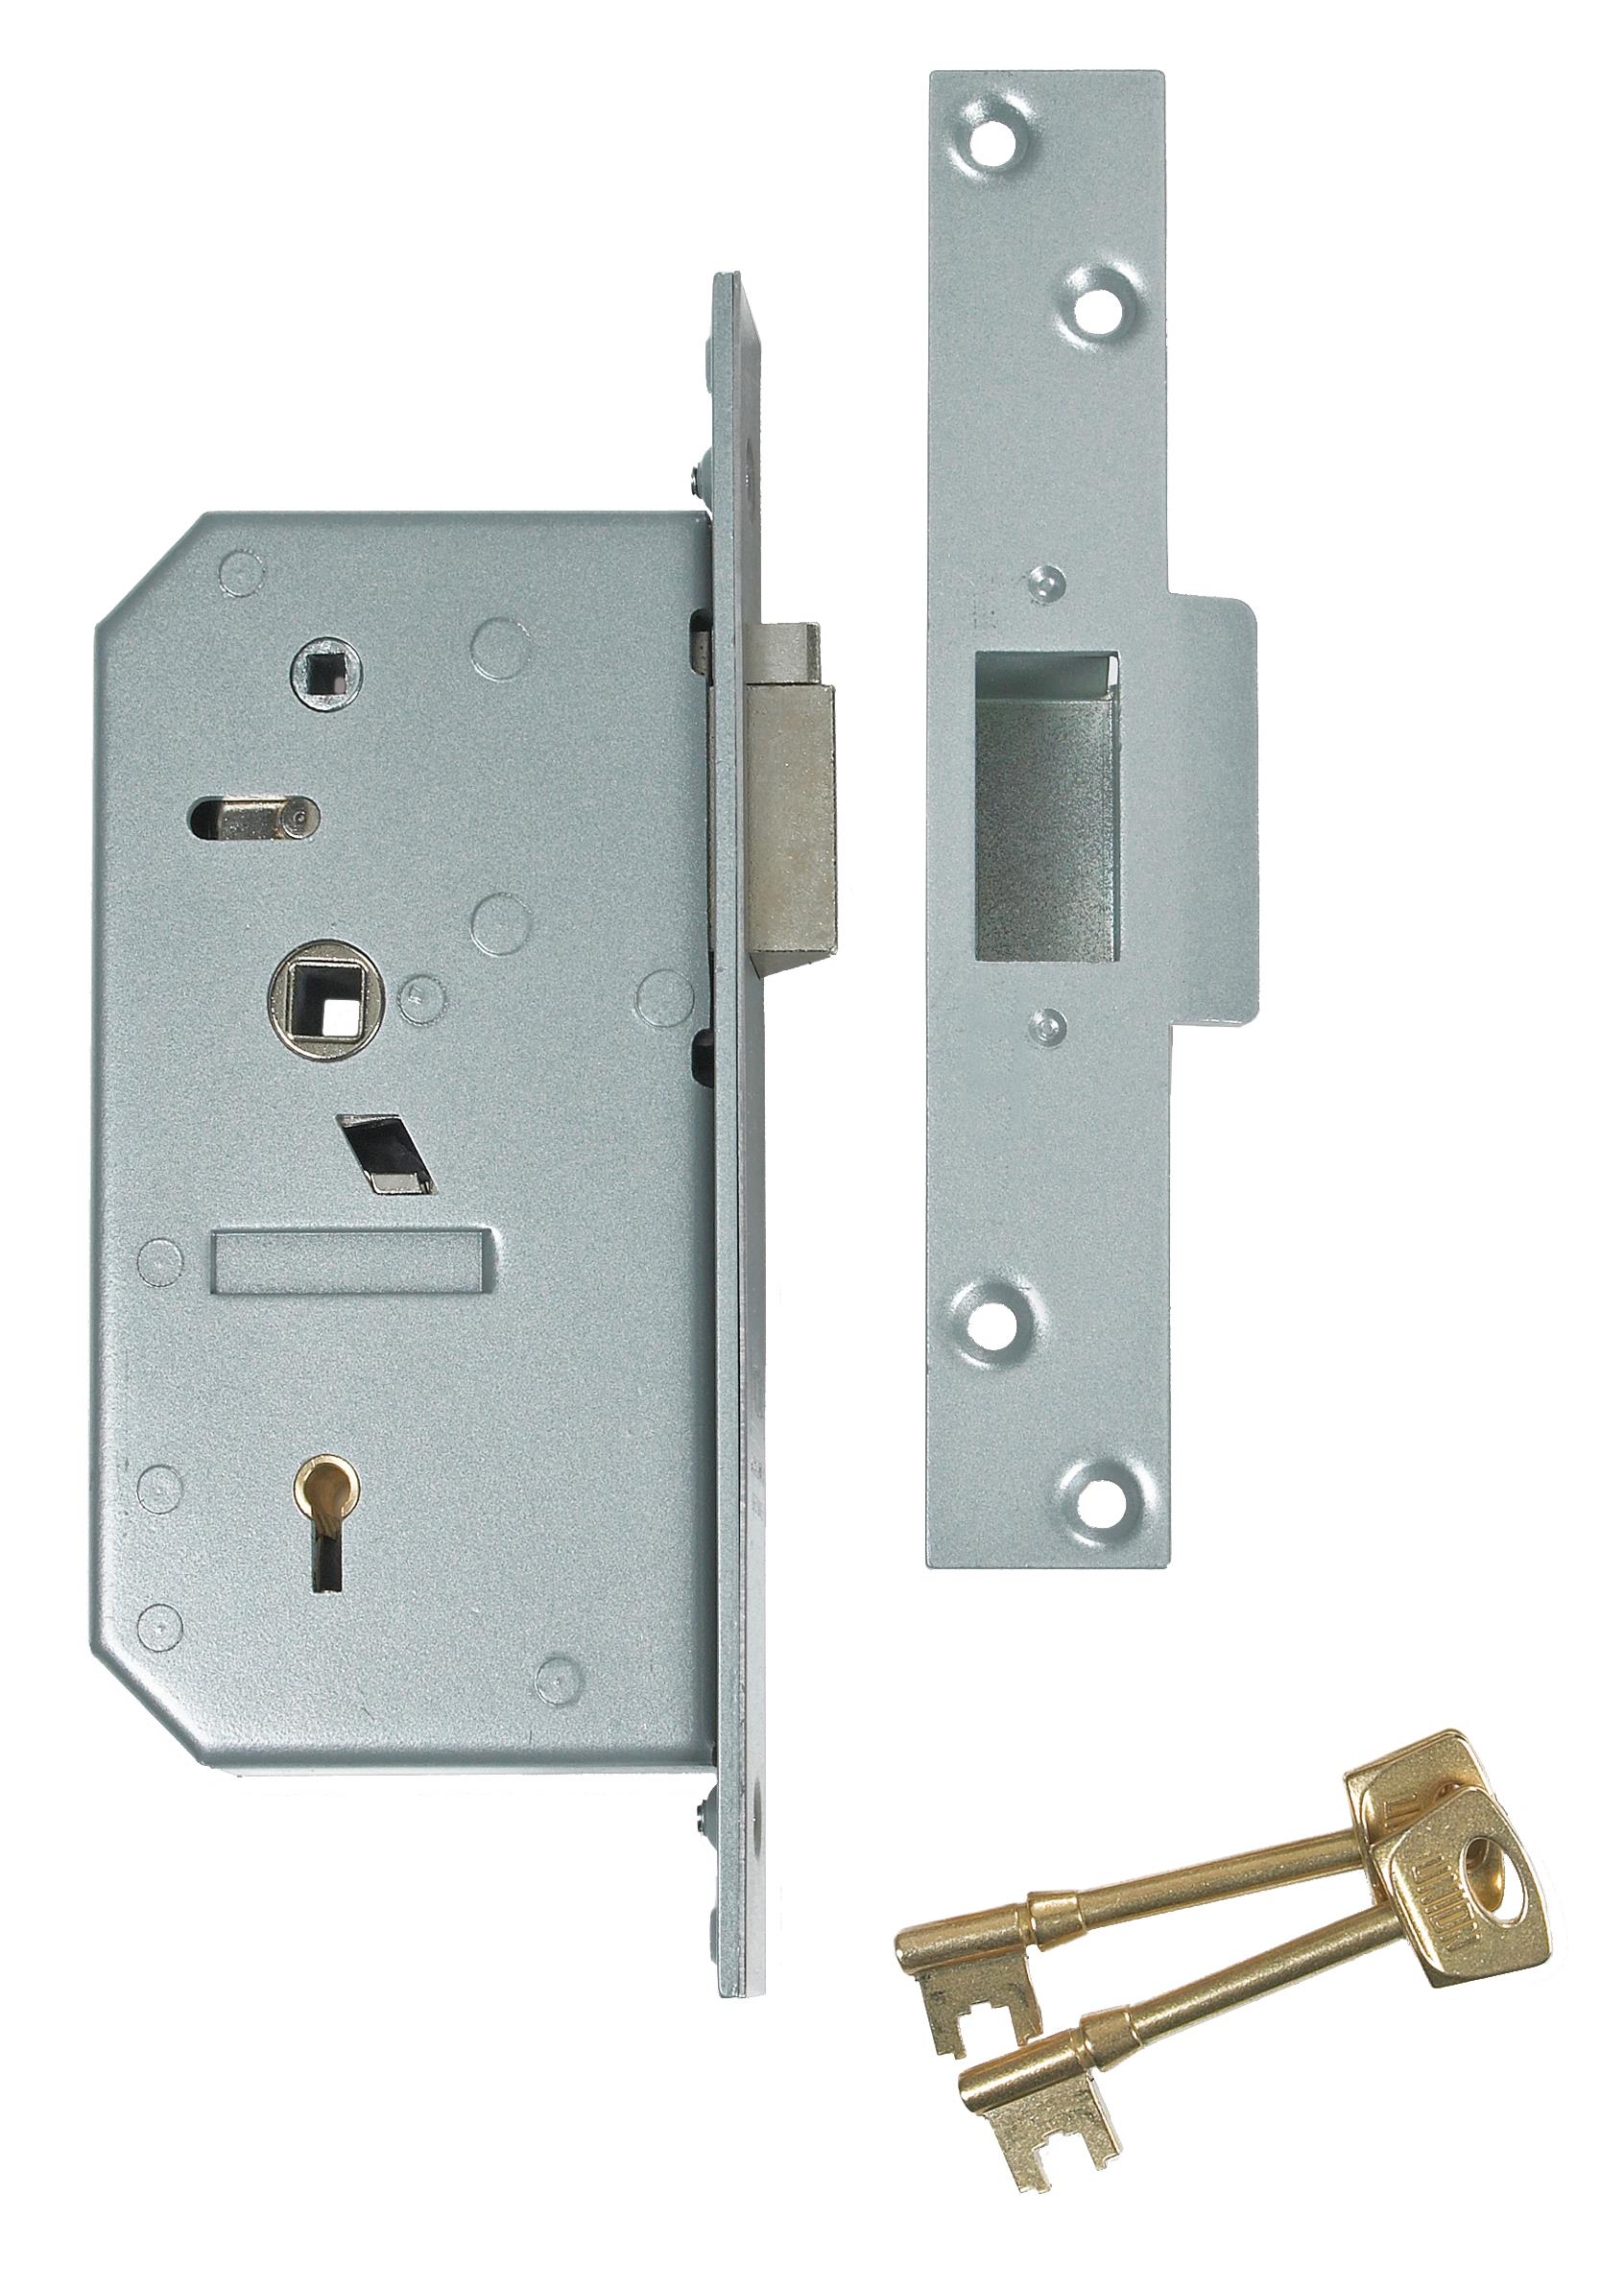 3R35 / 3R35XRKS - 5 Detainer Deadlocking Latch (RKS)